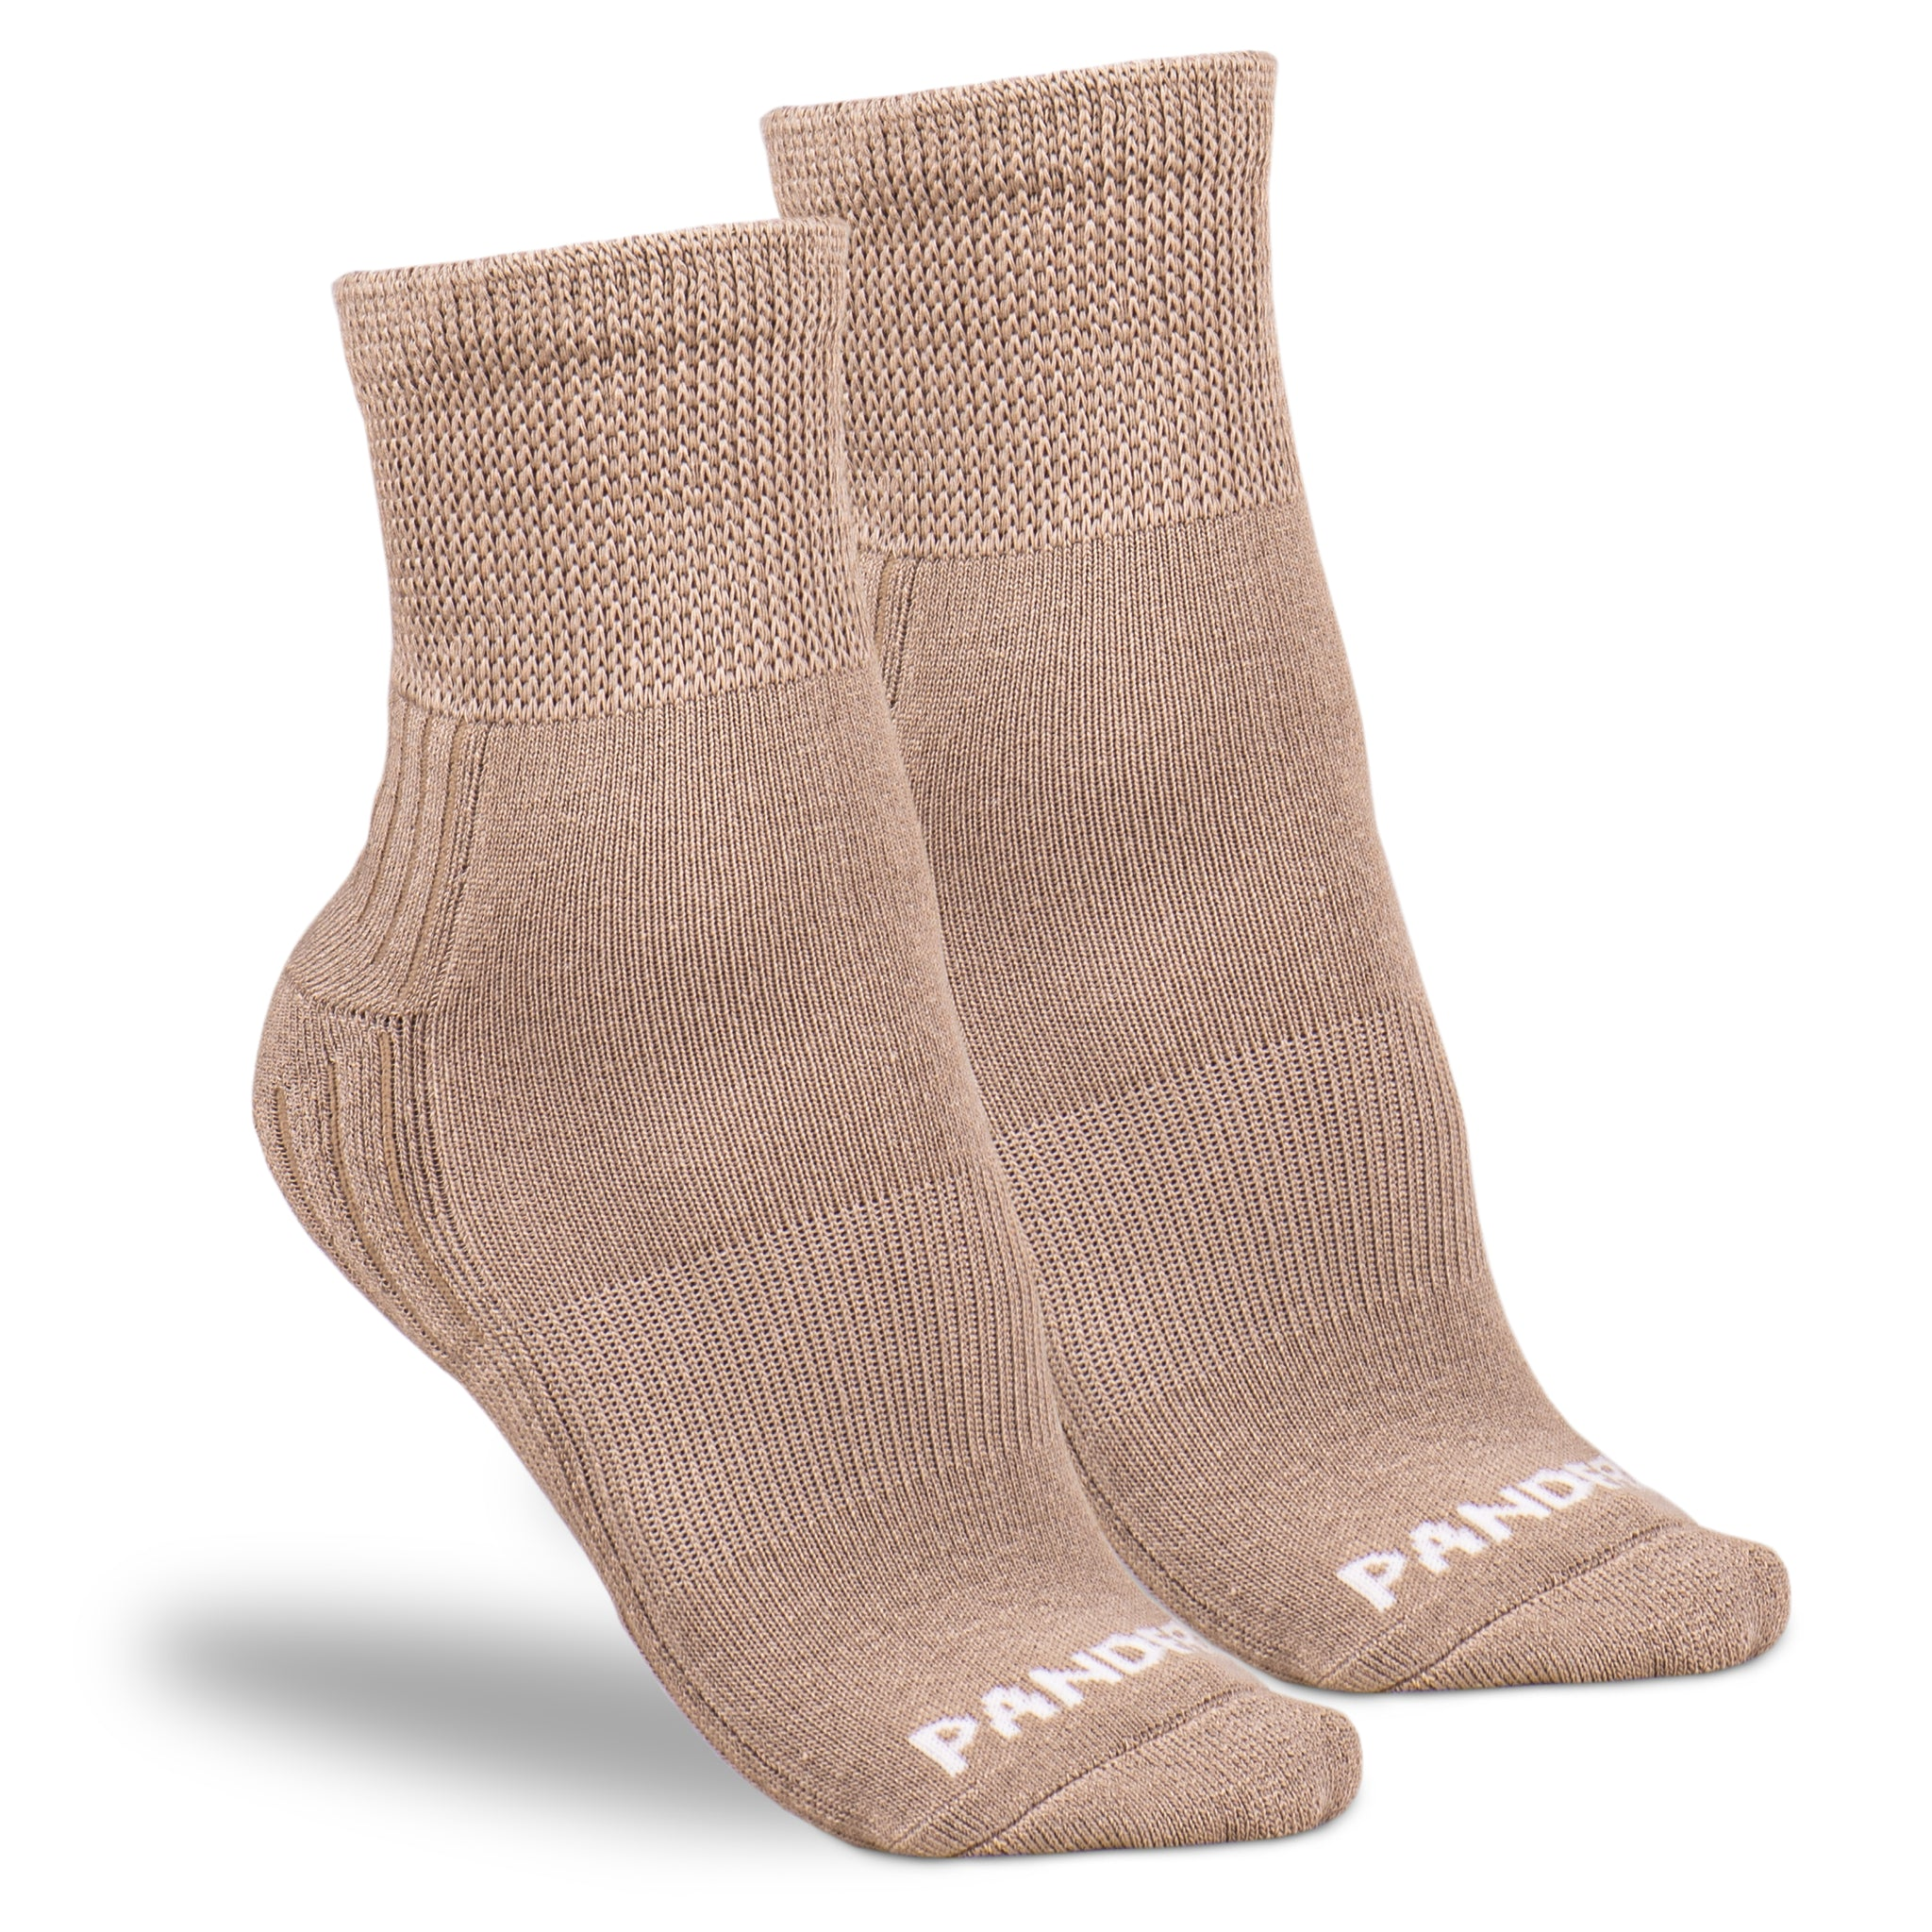 PANDERE Ankle Socks with Relaxed Fit Tops - Bundle of 3 pair